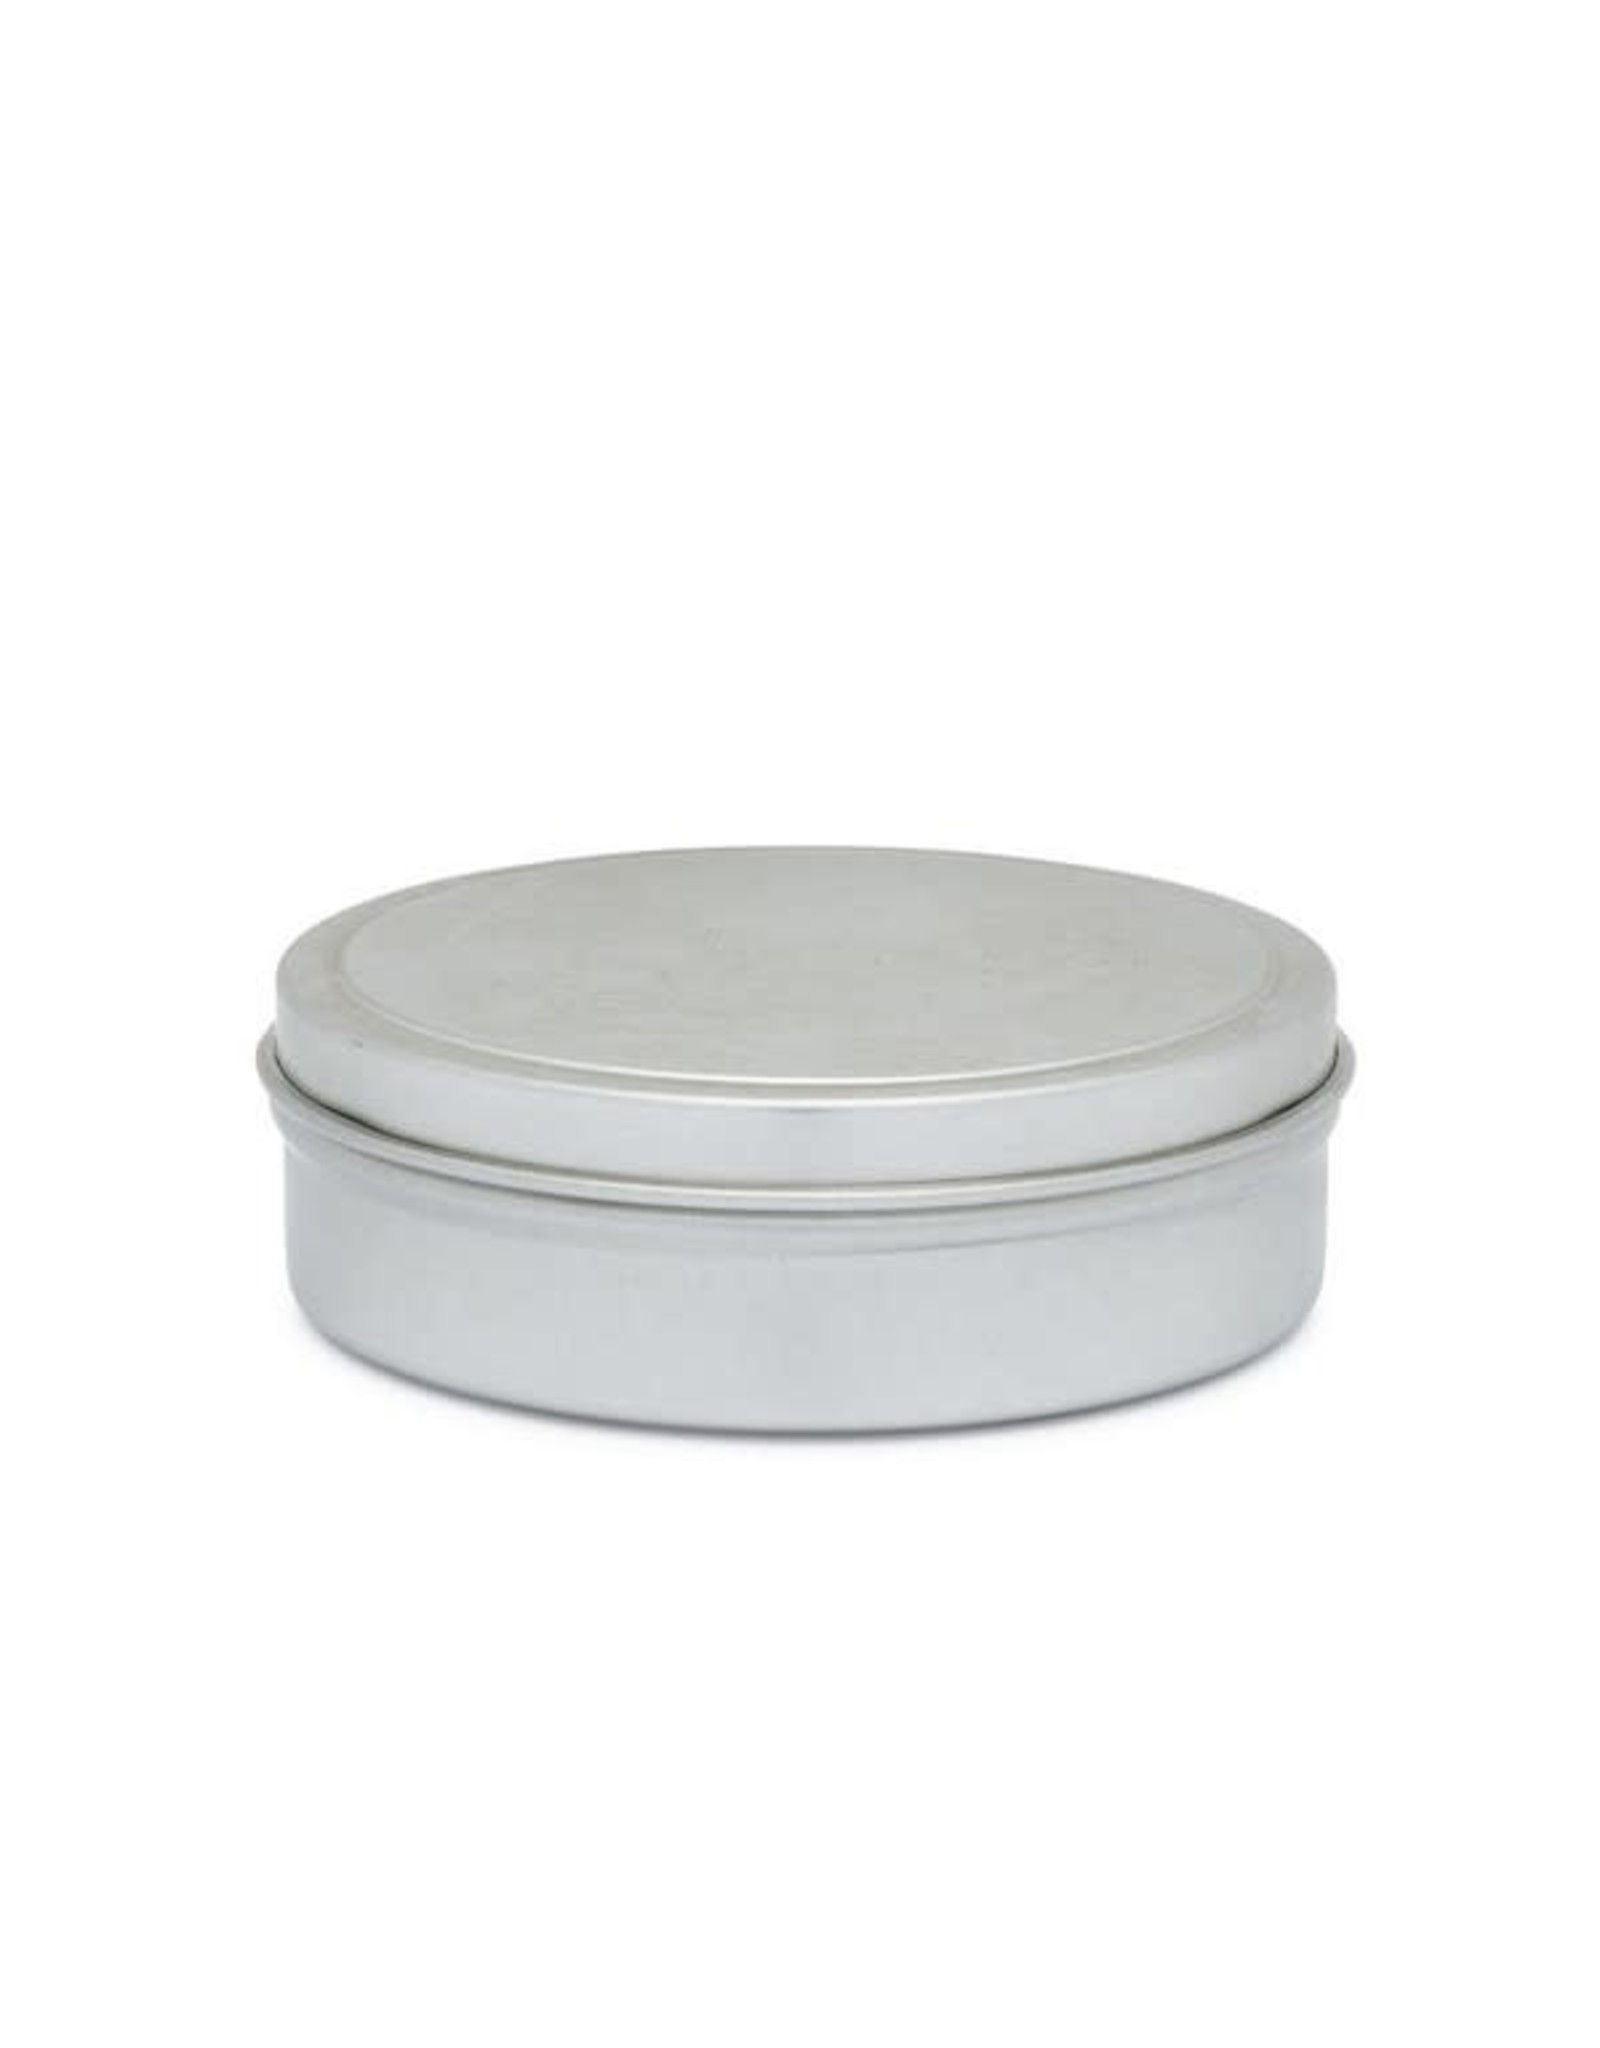 Garden City Essentials Metal Tin - 3 oz.